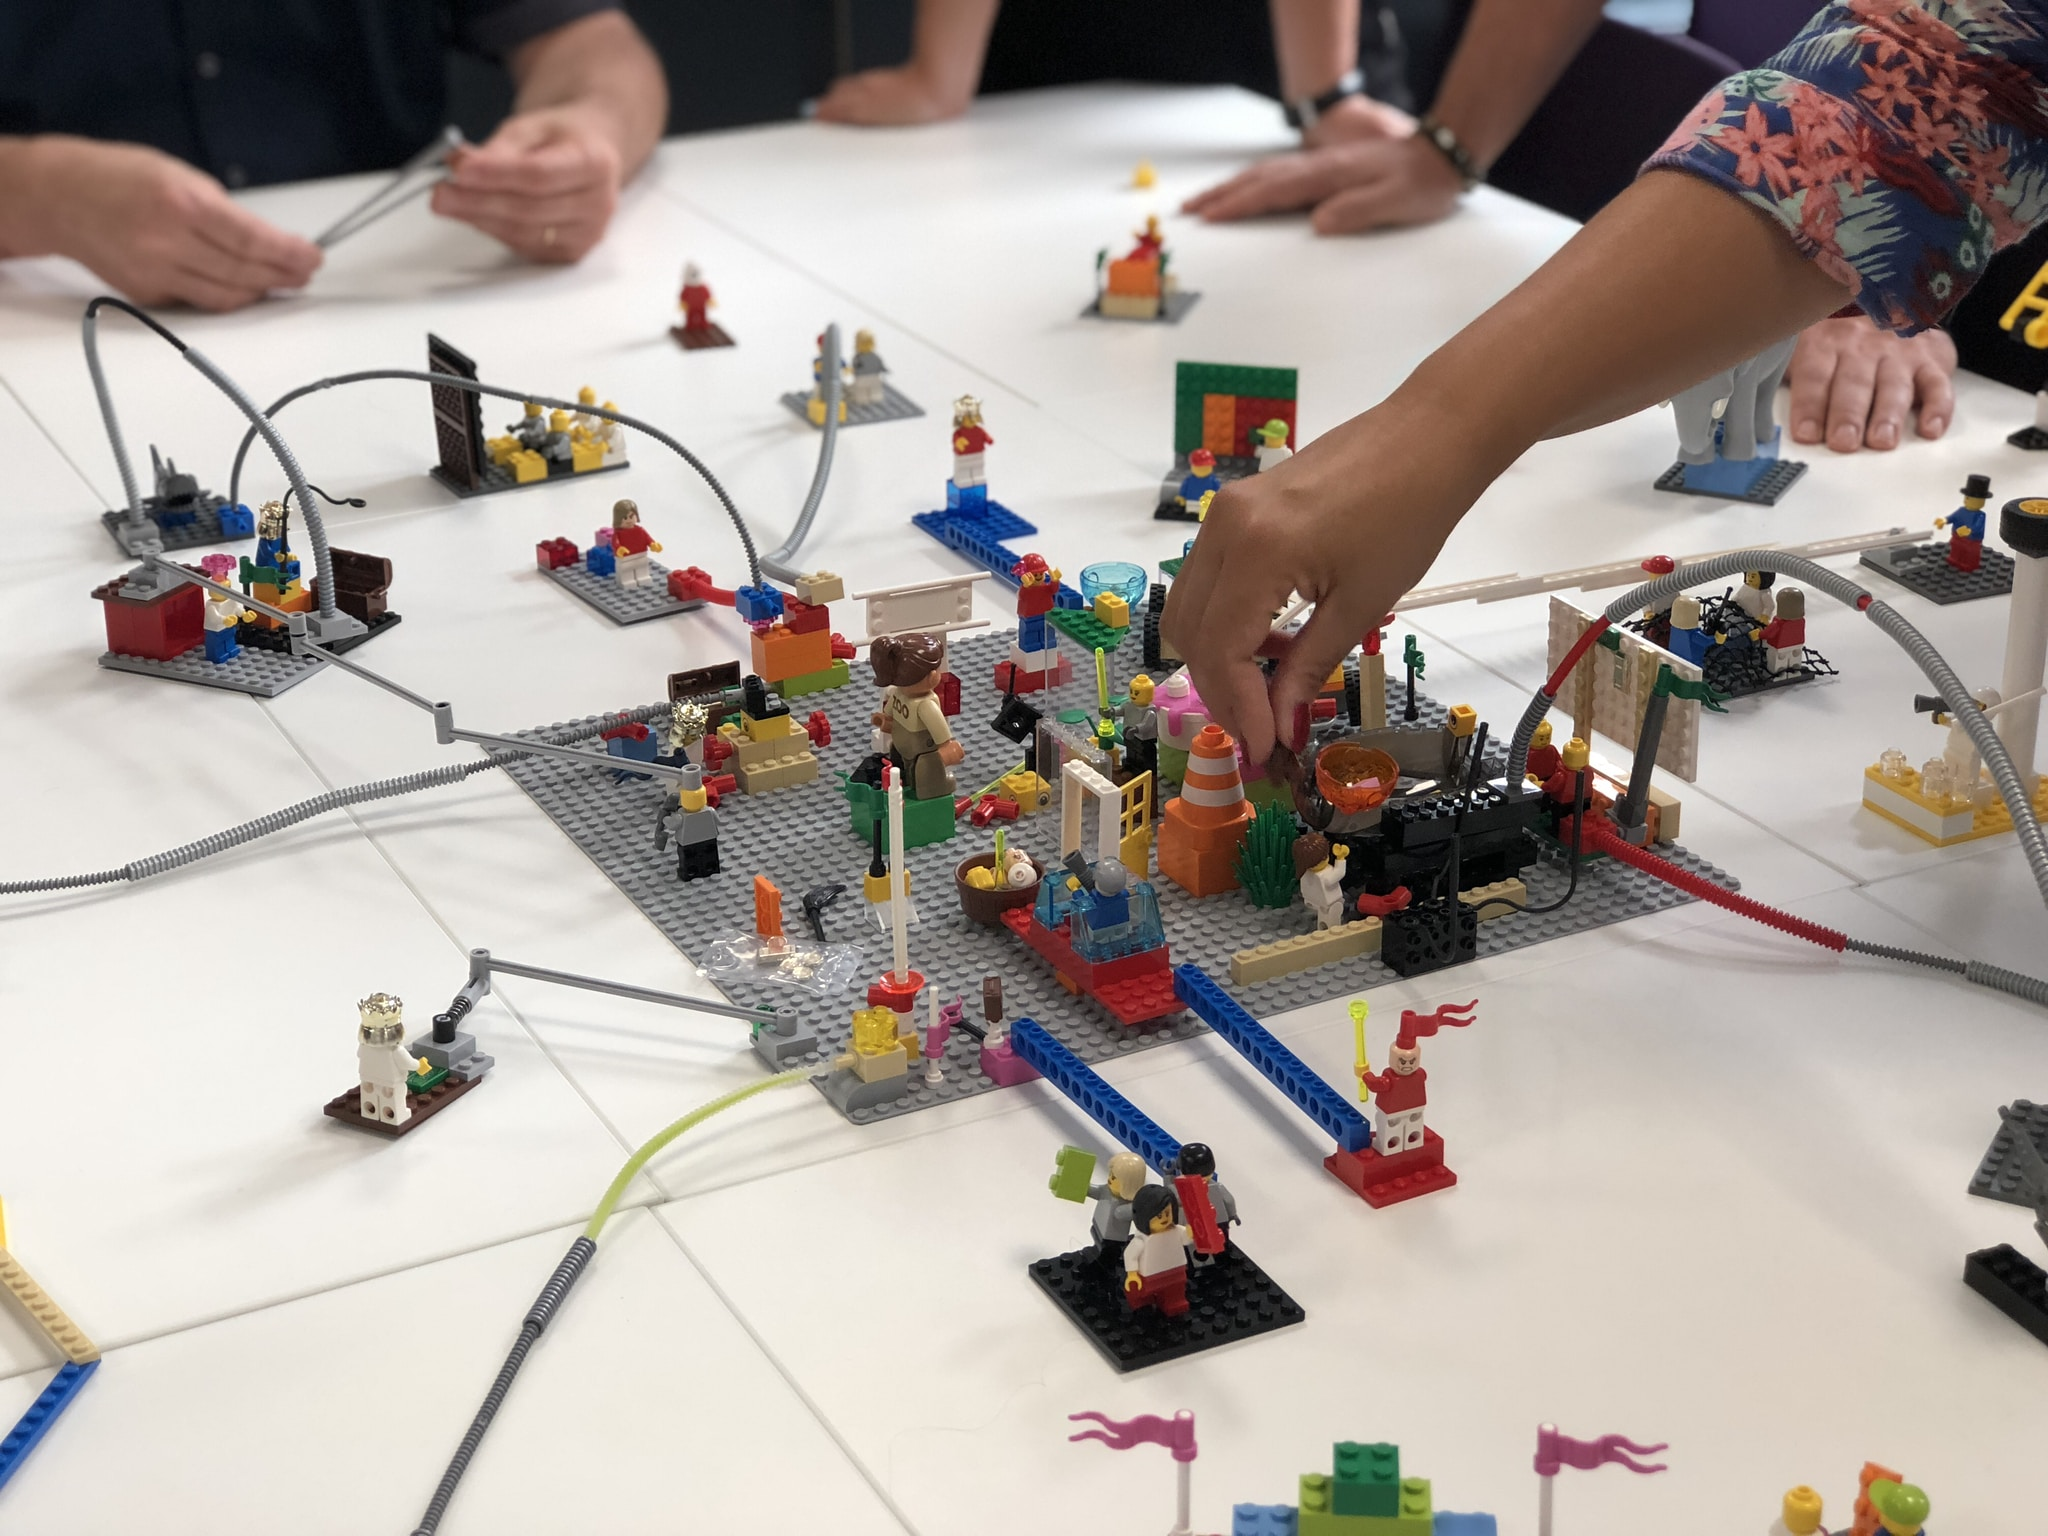 Lego city toy on table